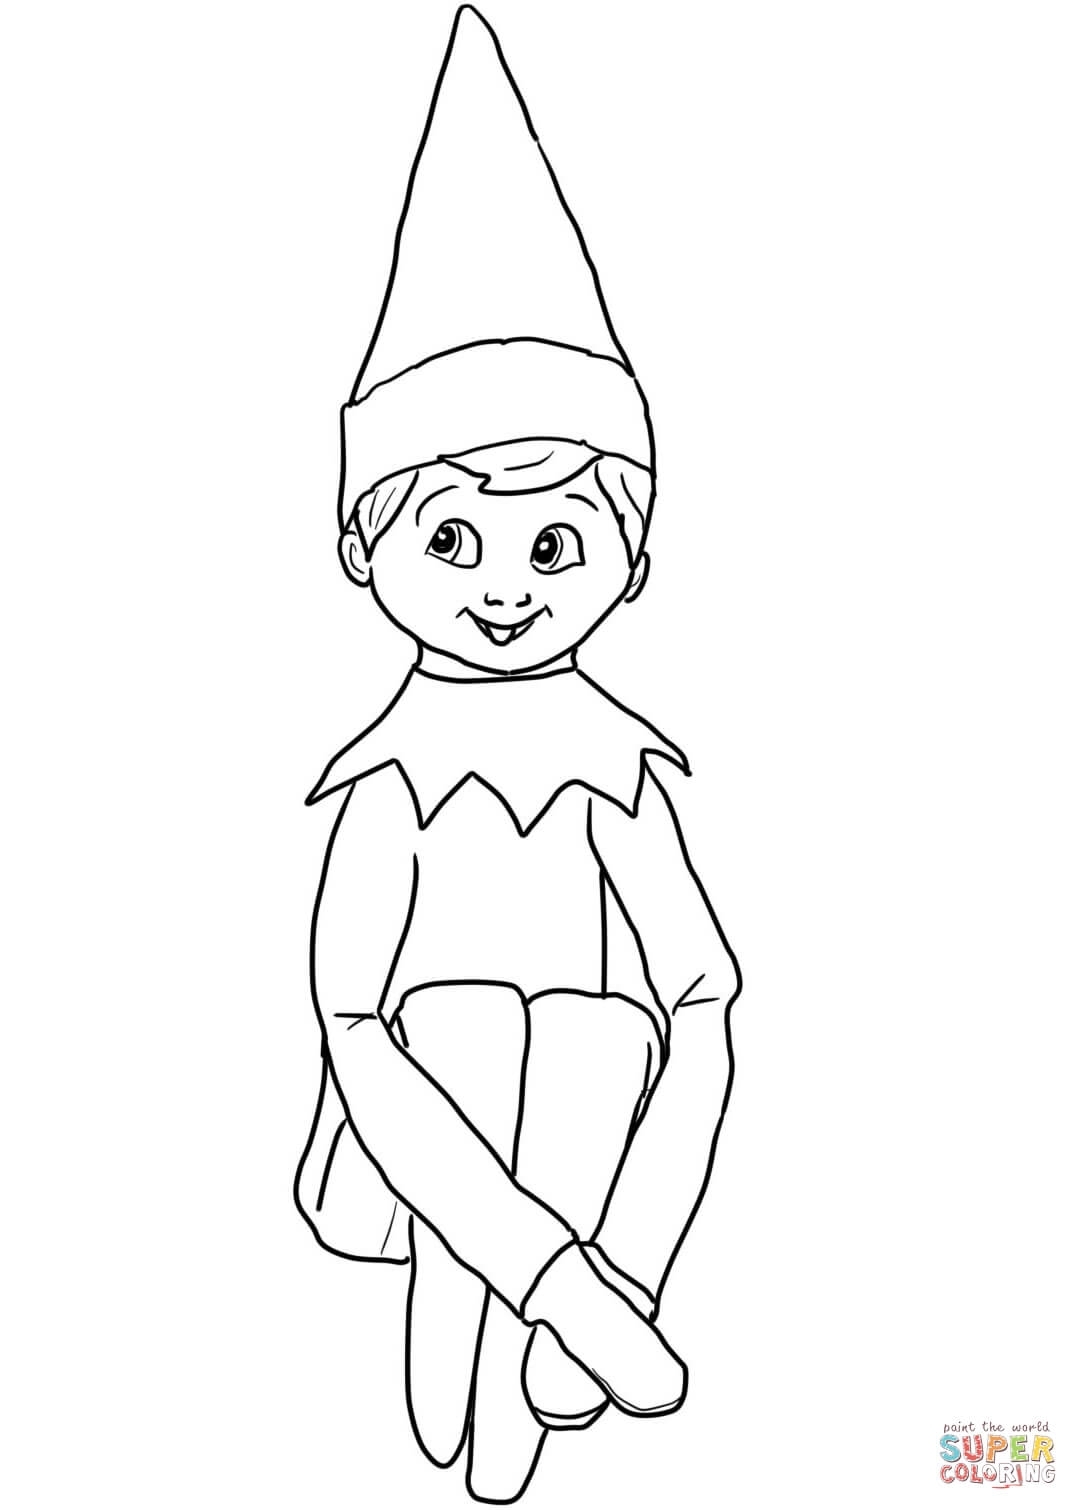 Elf On the Shelf Coloring Pages - Christmas Coloring Pages Elf the Shelf Full Page